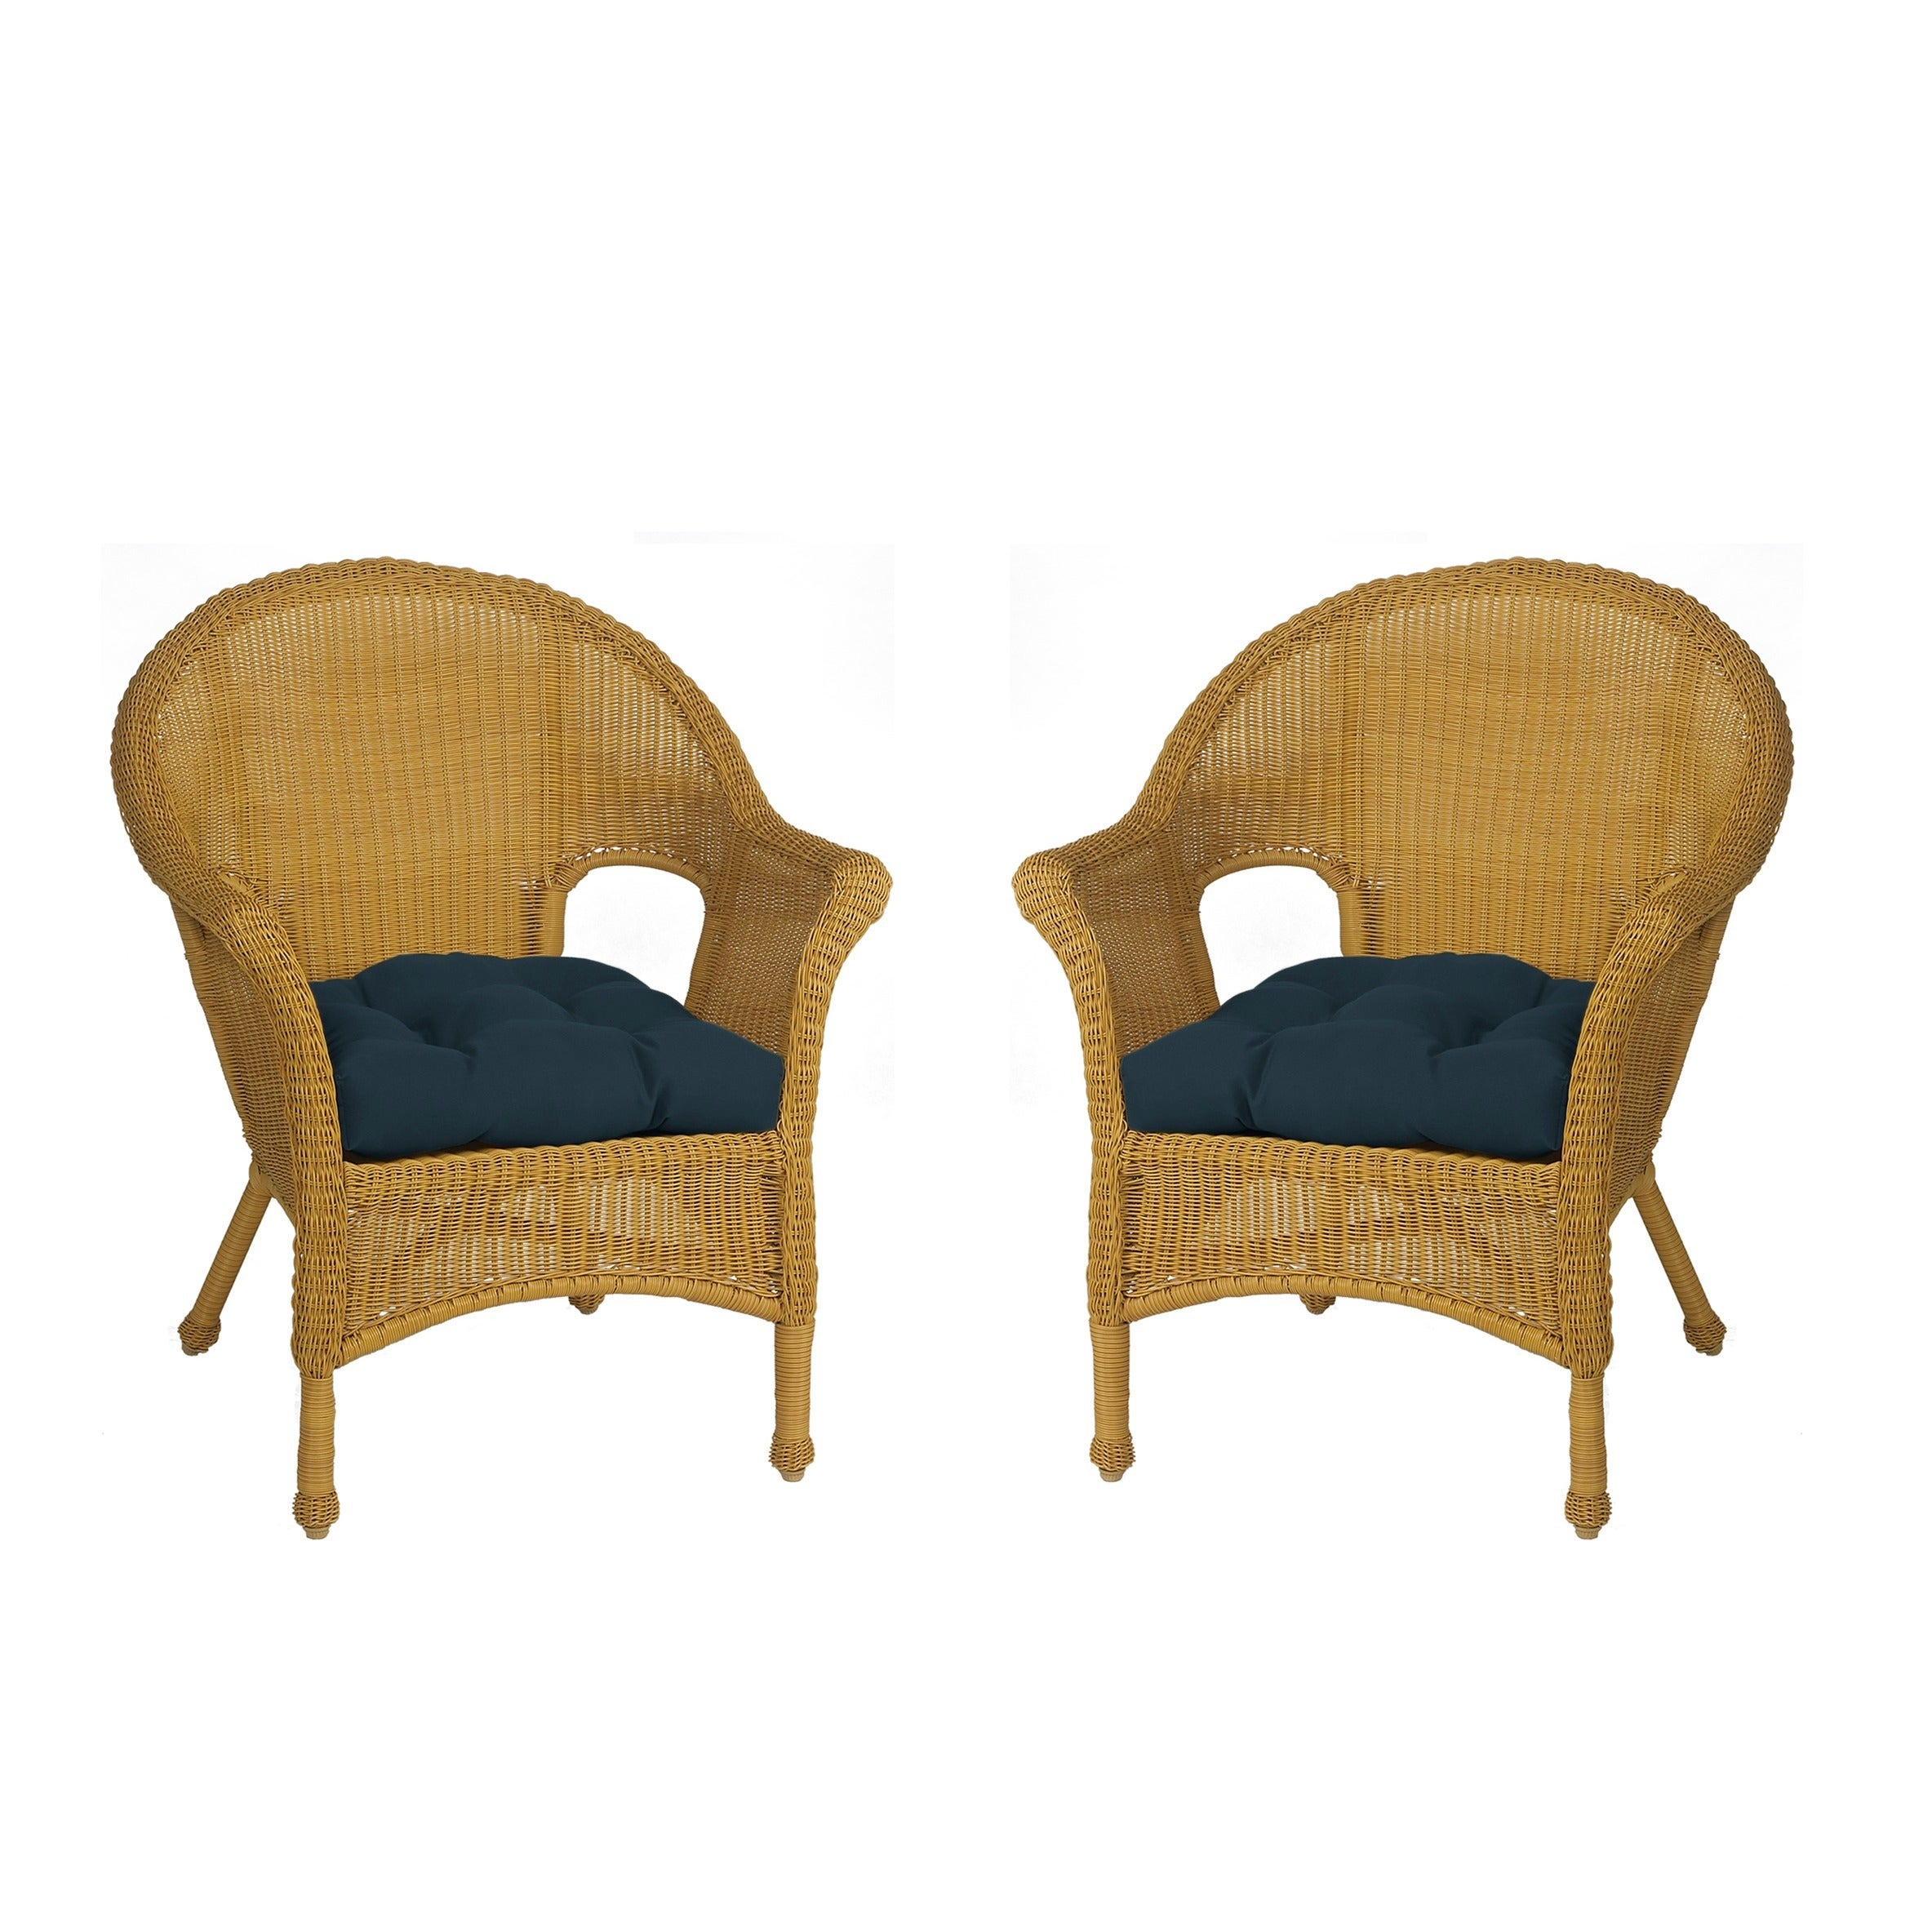 Royal All Weather Outdoor Navy Blue Wicker Chair Cushion Set Of 2 Free Shipping On Orders Over 45 5835111